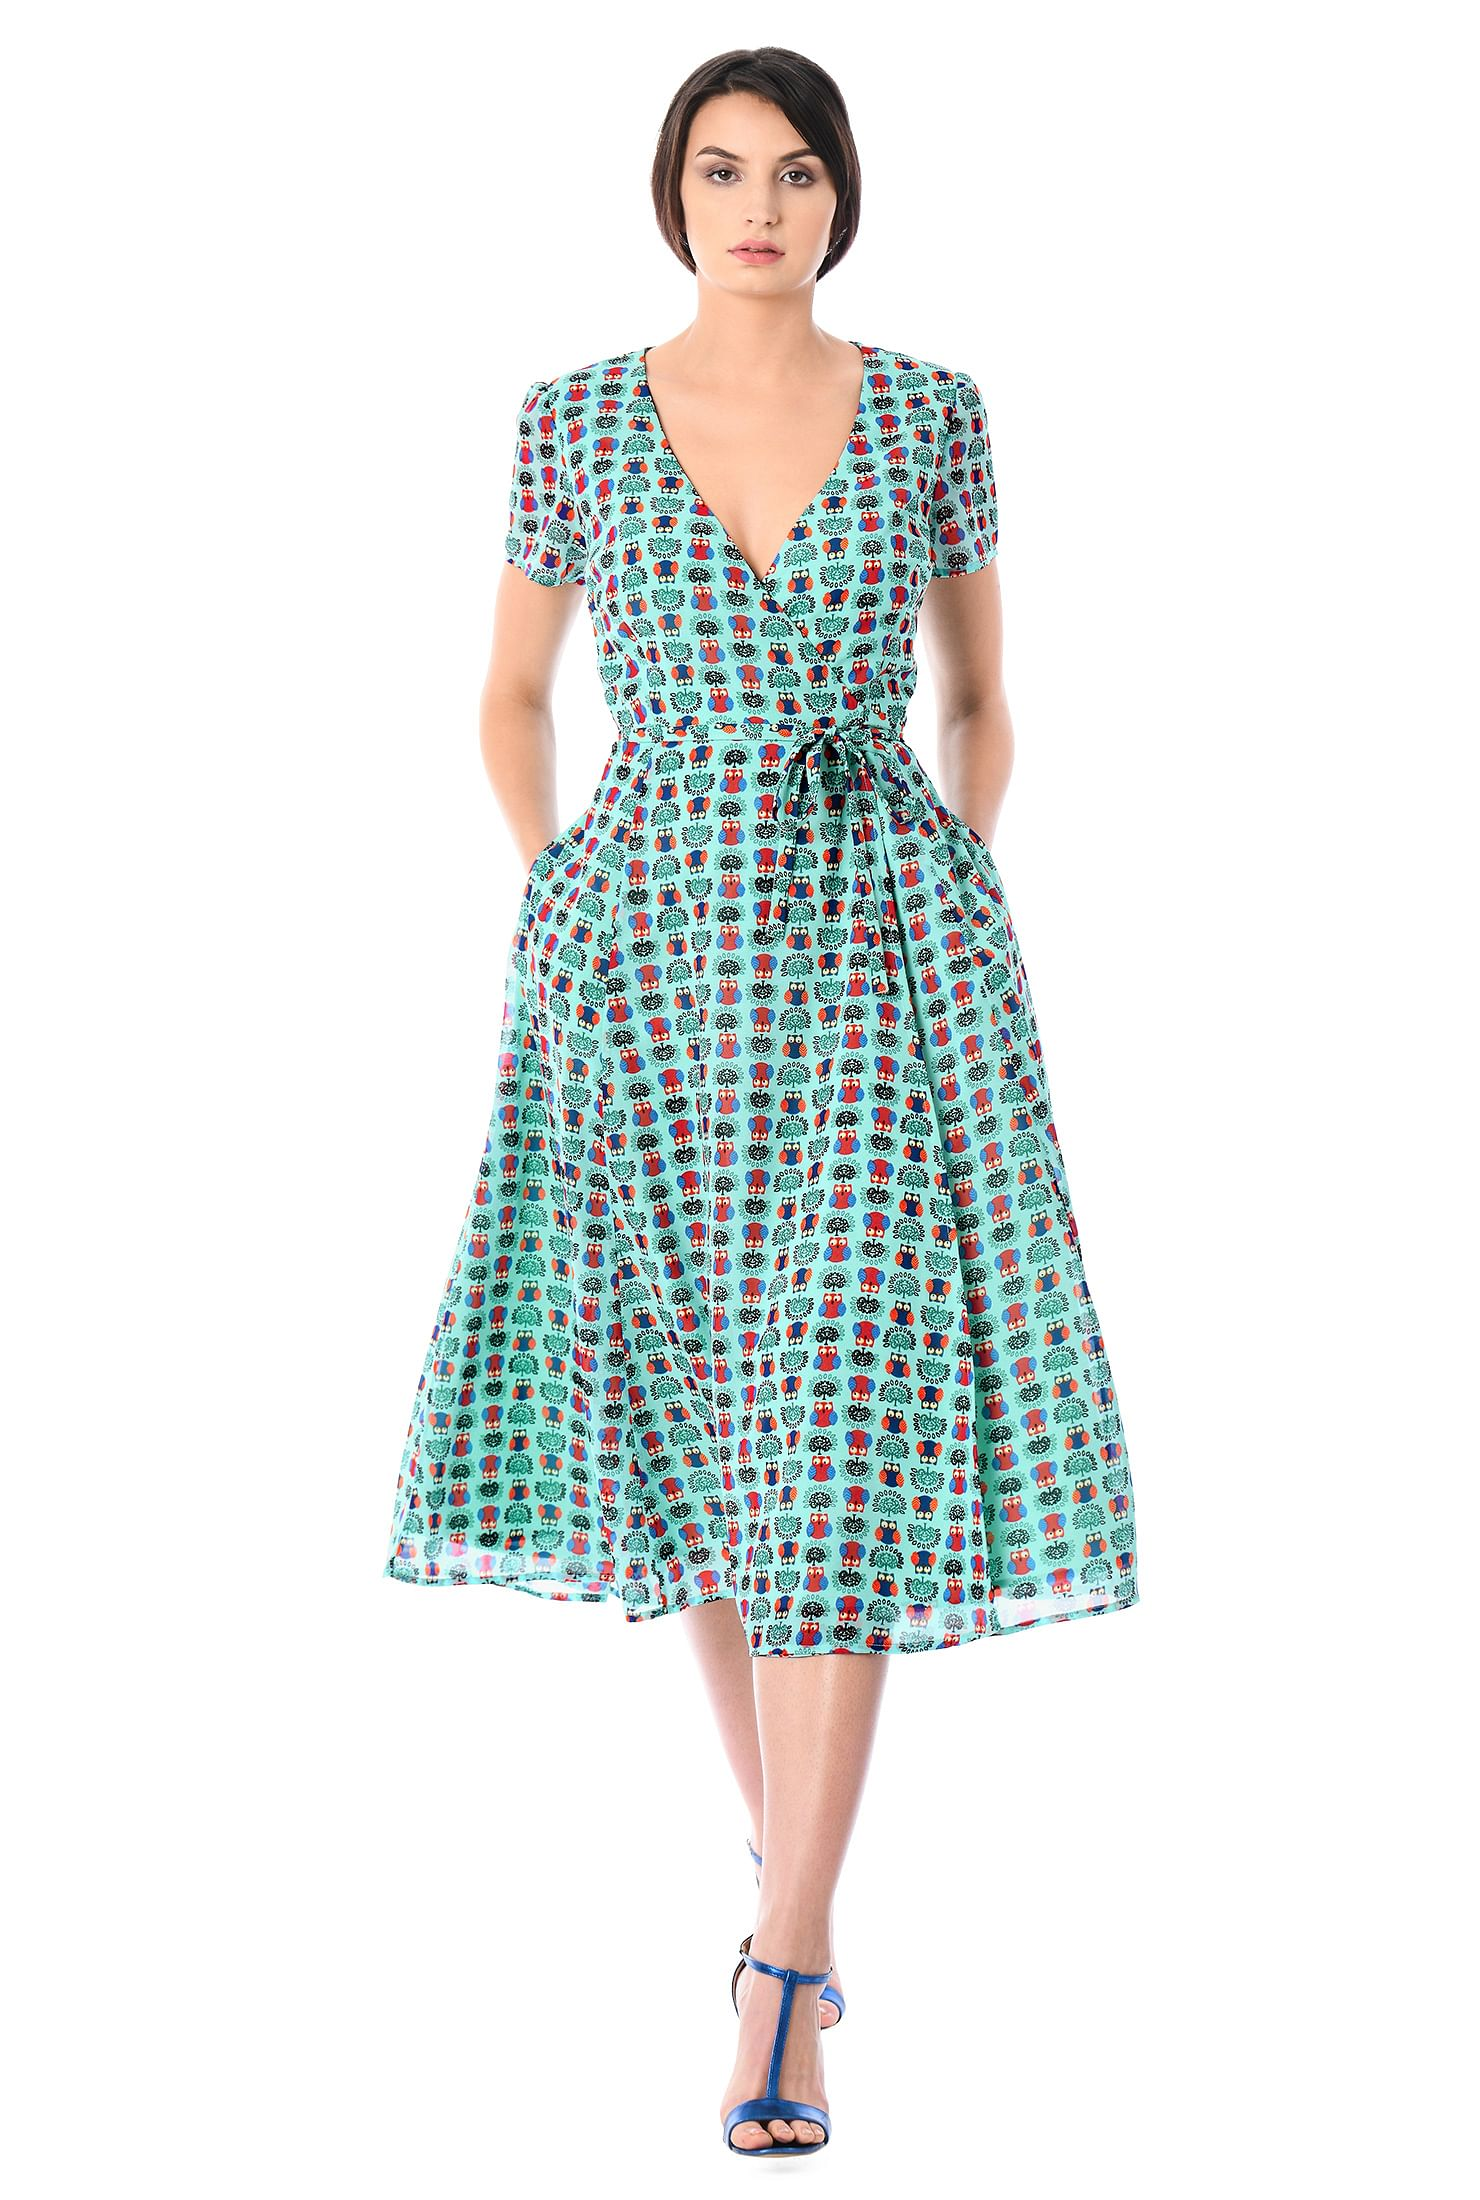 ", 2"" below mid-calf length dresses, lightweight Dresses, machine wash dresses, midi dresses, mint dresses, owl print dresses, pocket dresses, Surplice Dresses, v-neck dresses, wrap dresses"